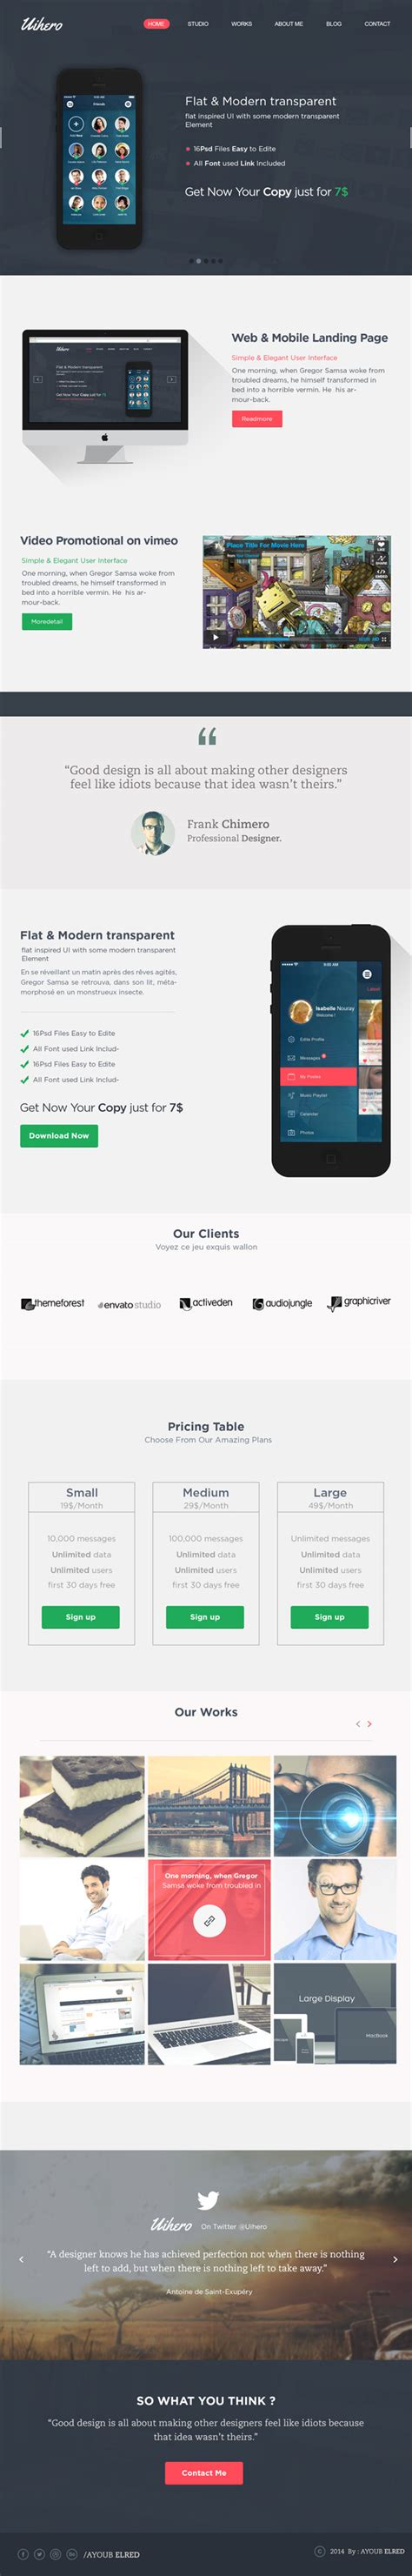 12 amazing responsive one page website templates for your brand